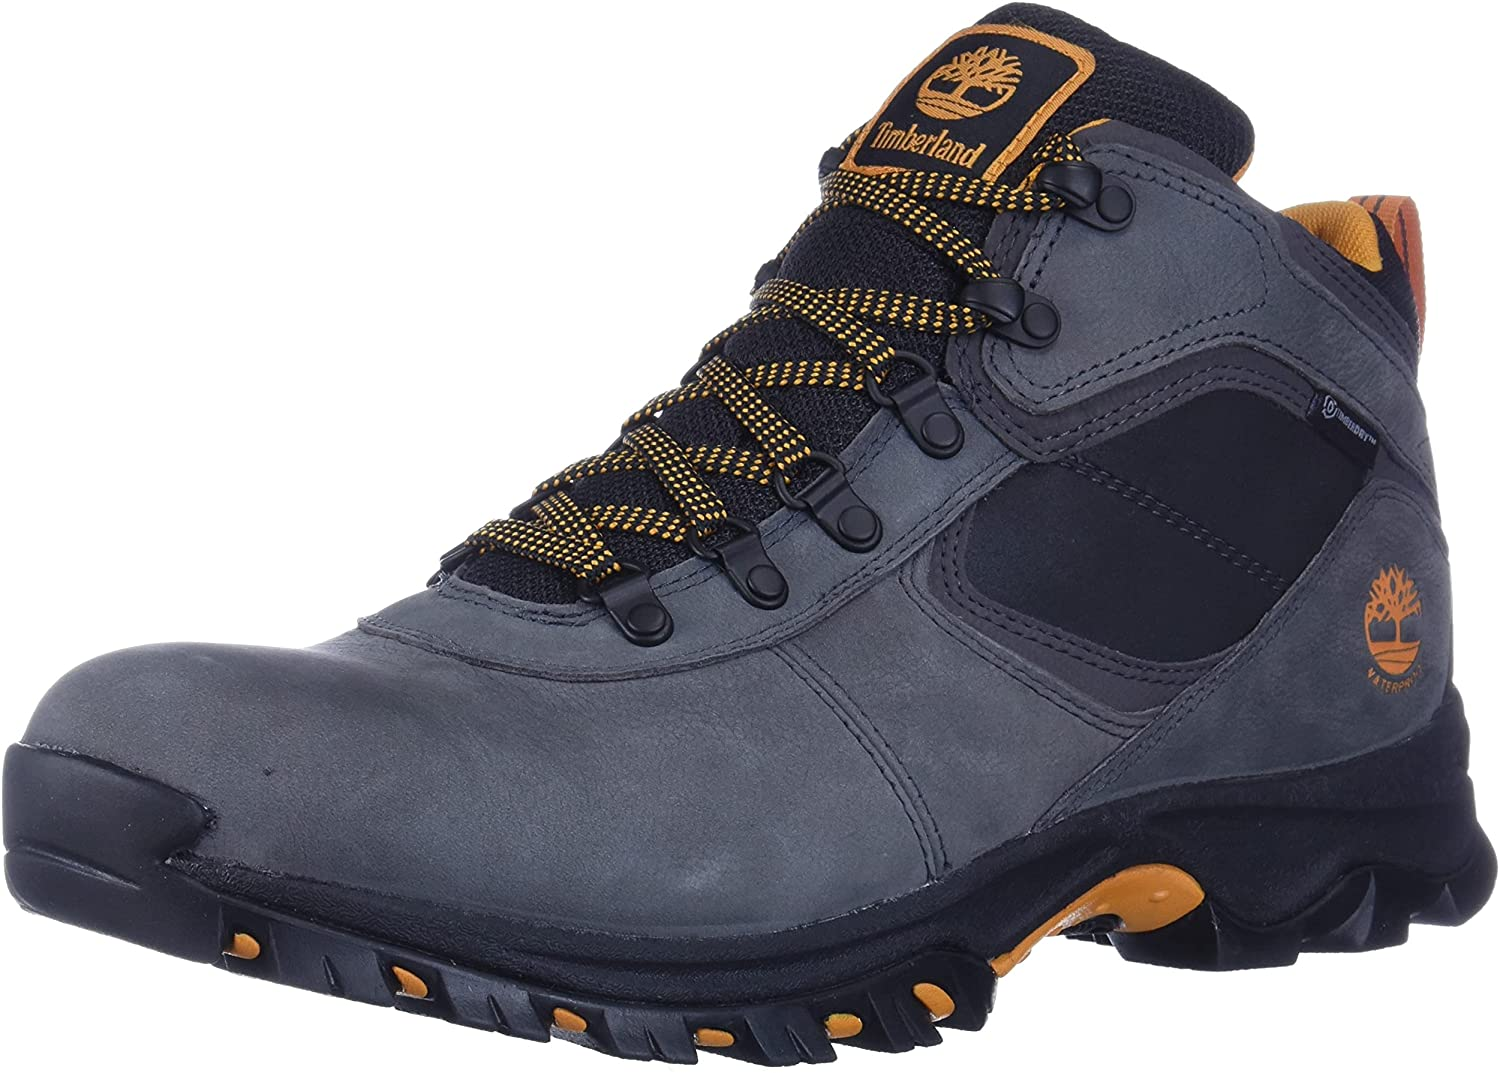 Timberland Men's Mt. Maddsen Mid Popularity Hiking Gorgeous Boot Wp Leather